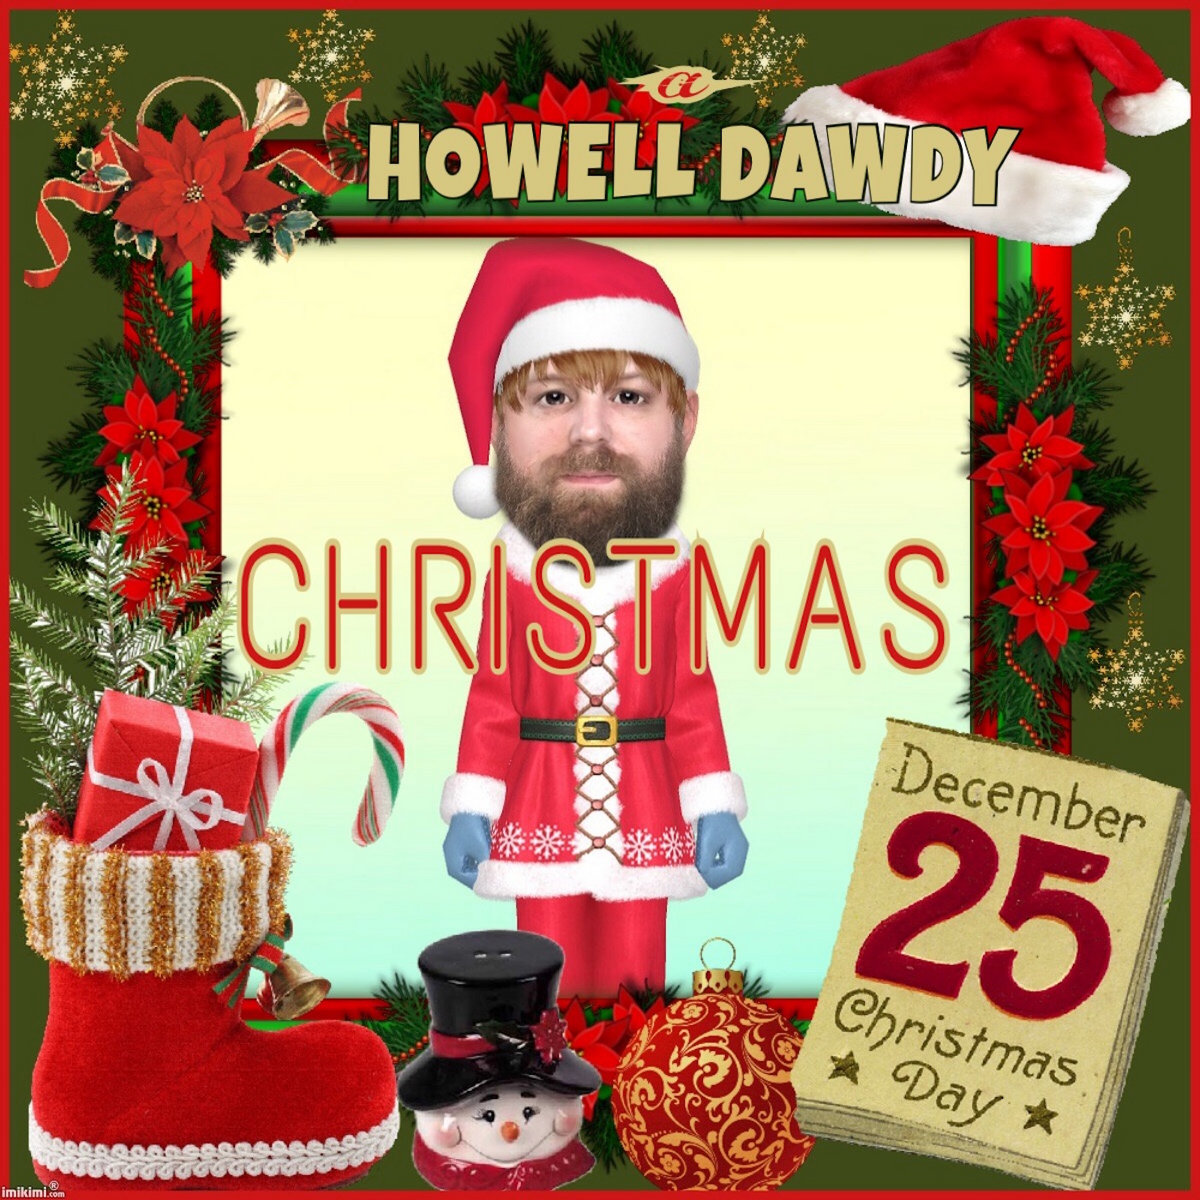 from a howell dawdy christmas by howell dawdy - Dirty Christmas Songs